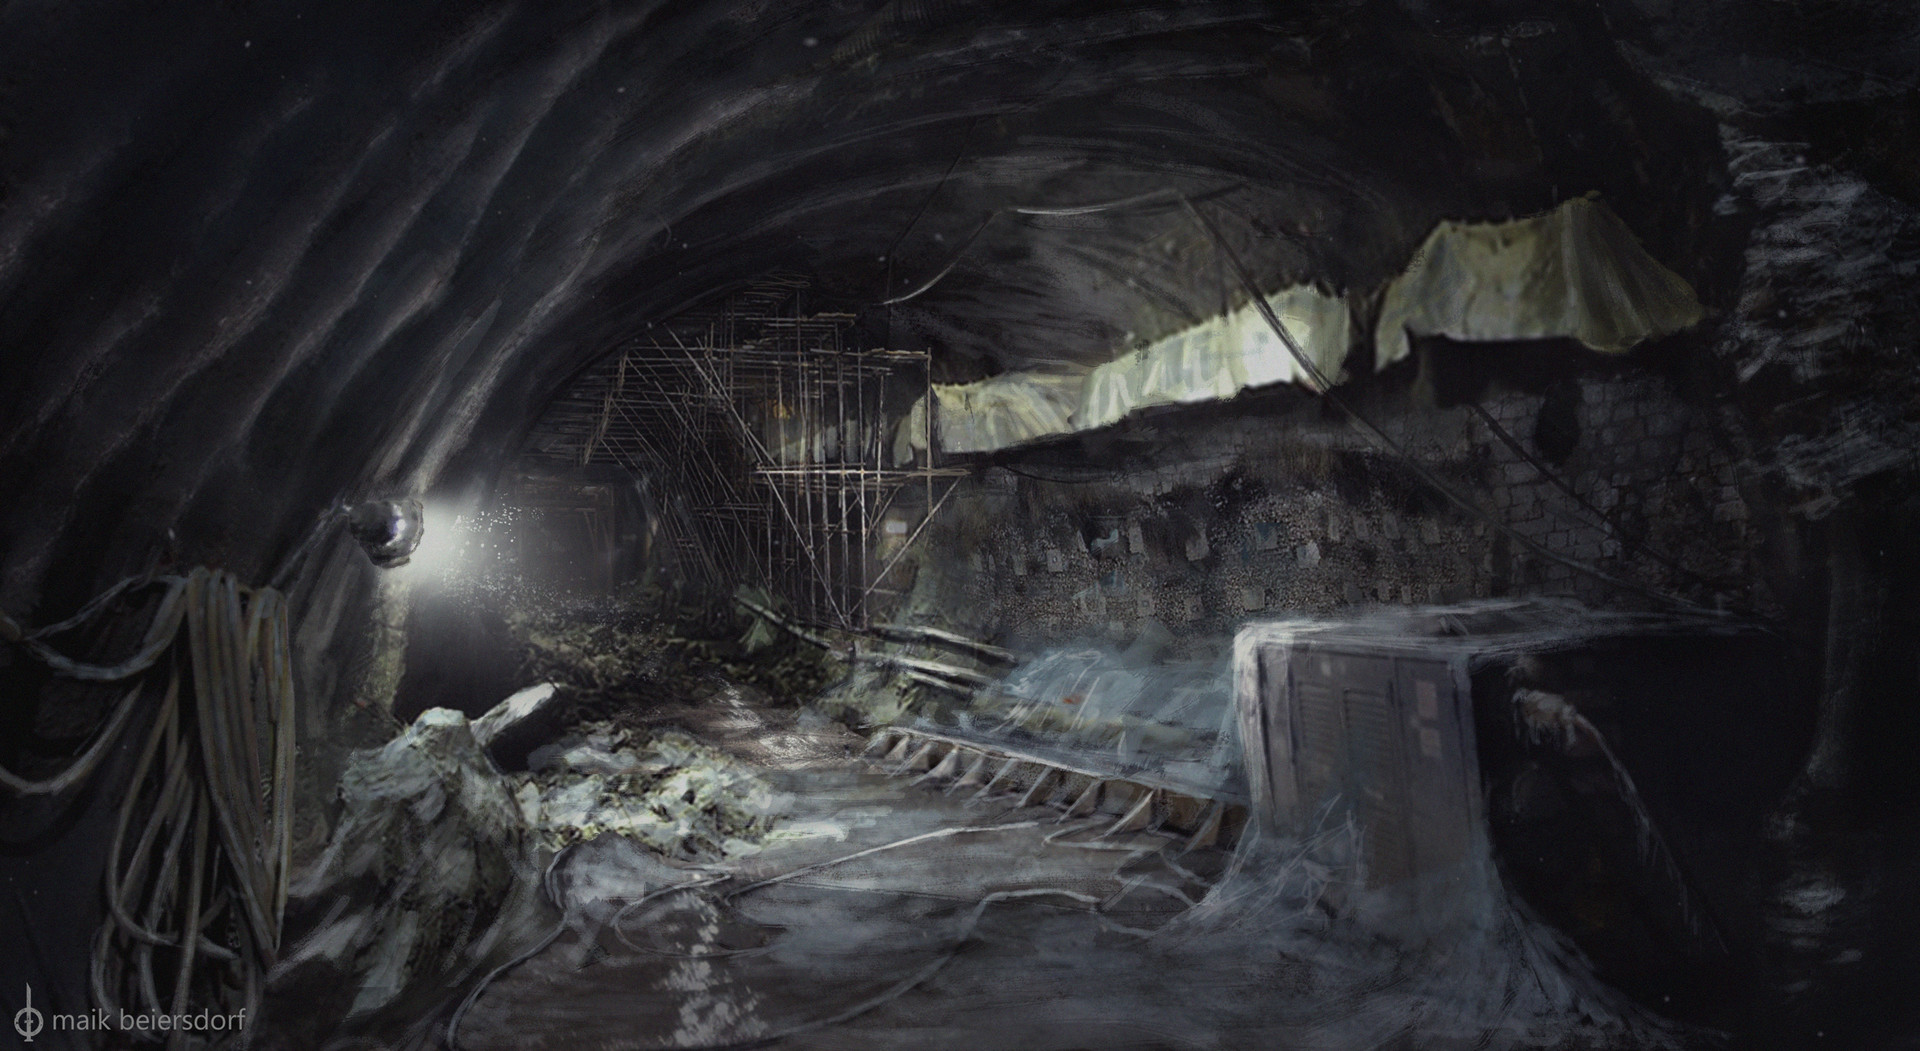 Maik beiersdorf unifase excavation tunnel